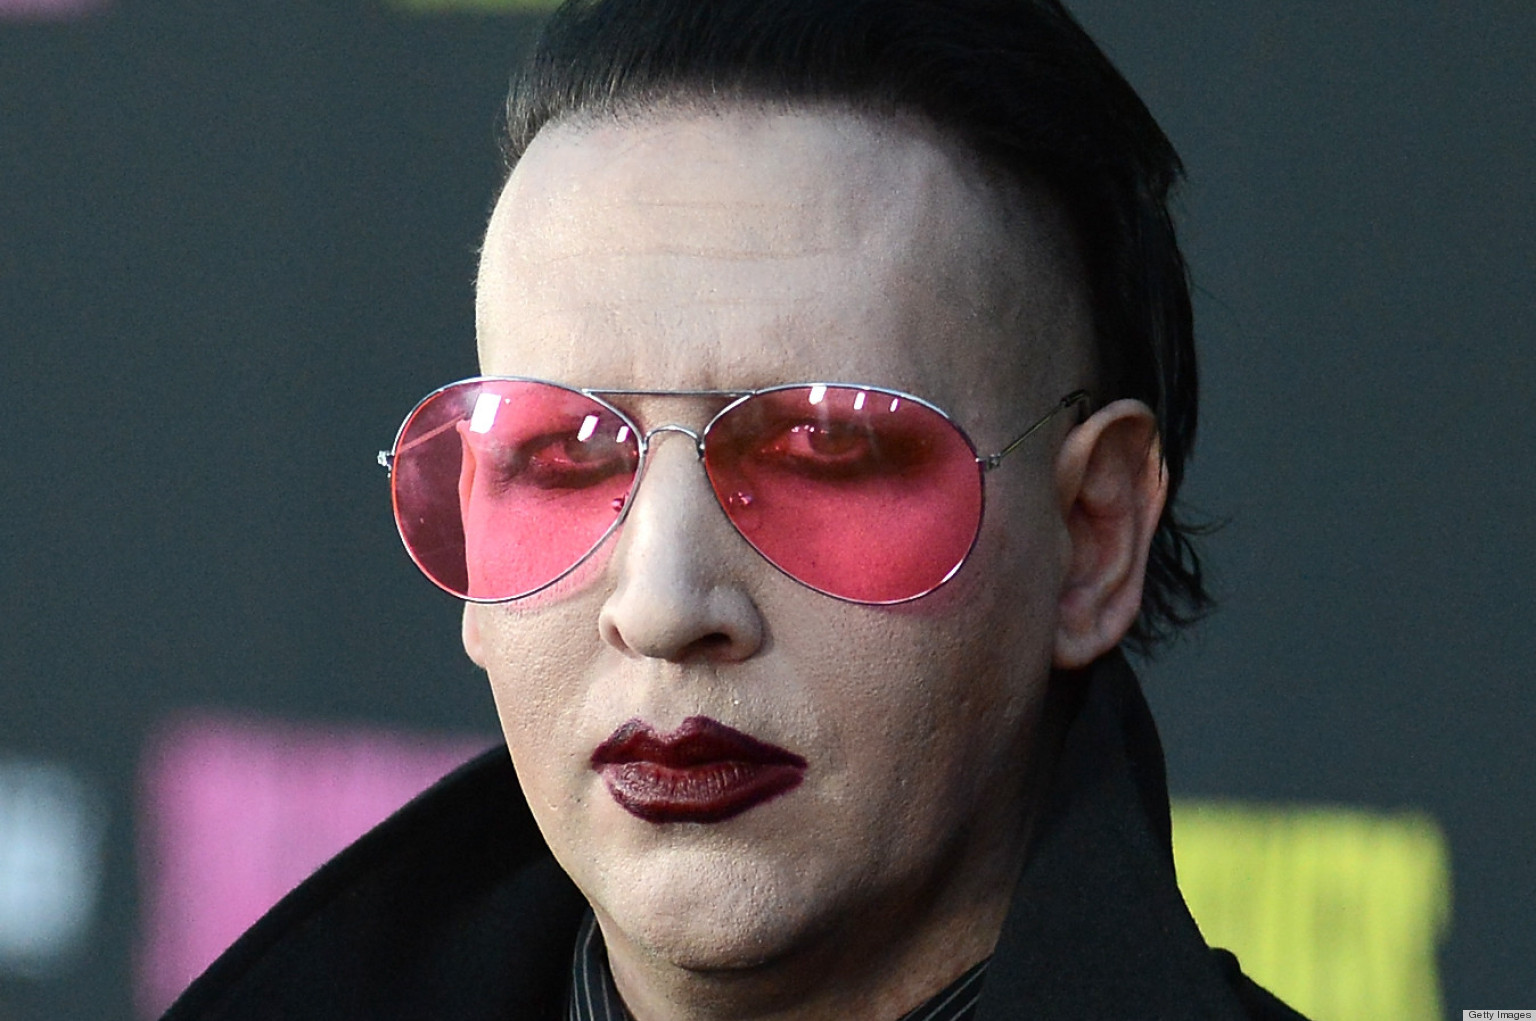 Marilyn manson in saint laurent ad takes us by surprise photo marilyn manson in saint laurent ad takes us by surprise photo huffpost bookmarktalkfo Images